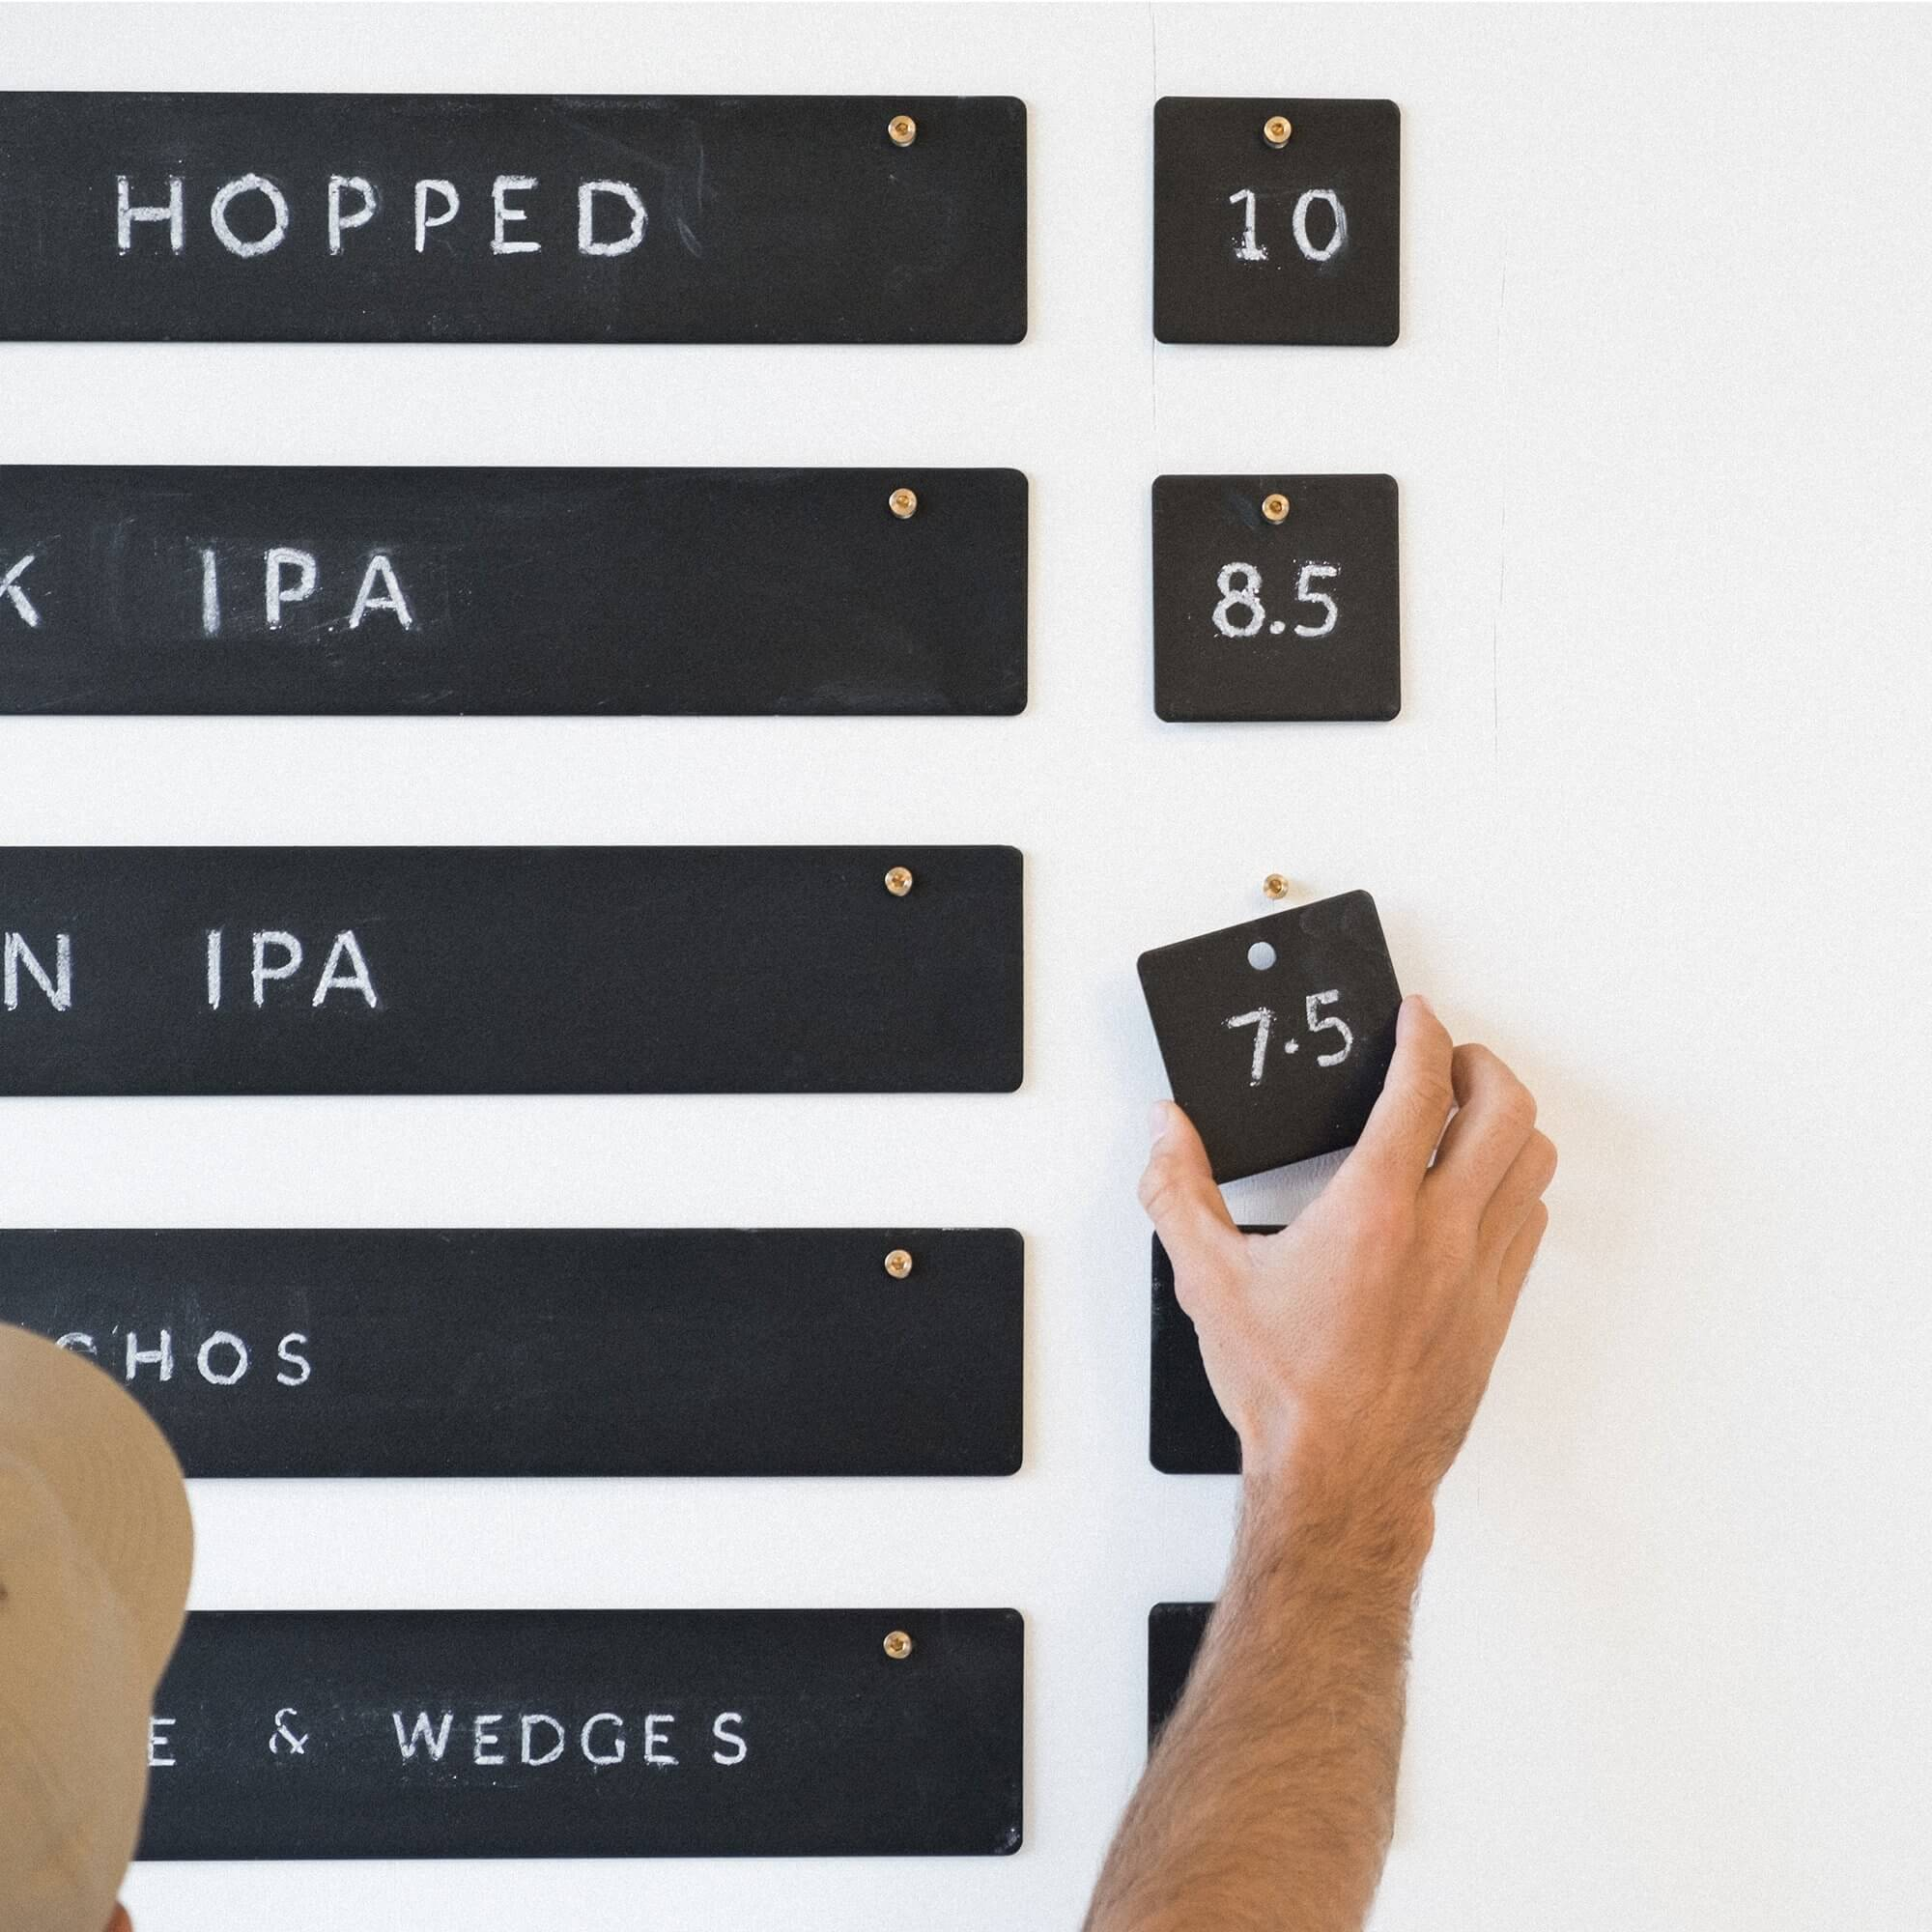 How to install the George & Willy market chalkboard for displaying menus, to-do lists, specials, coffee menus, or wedding signs